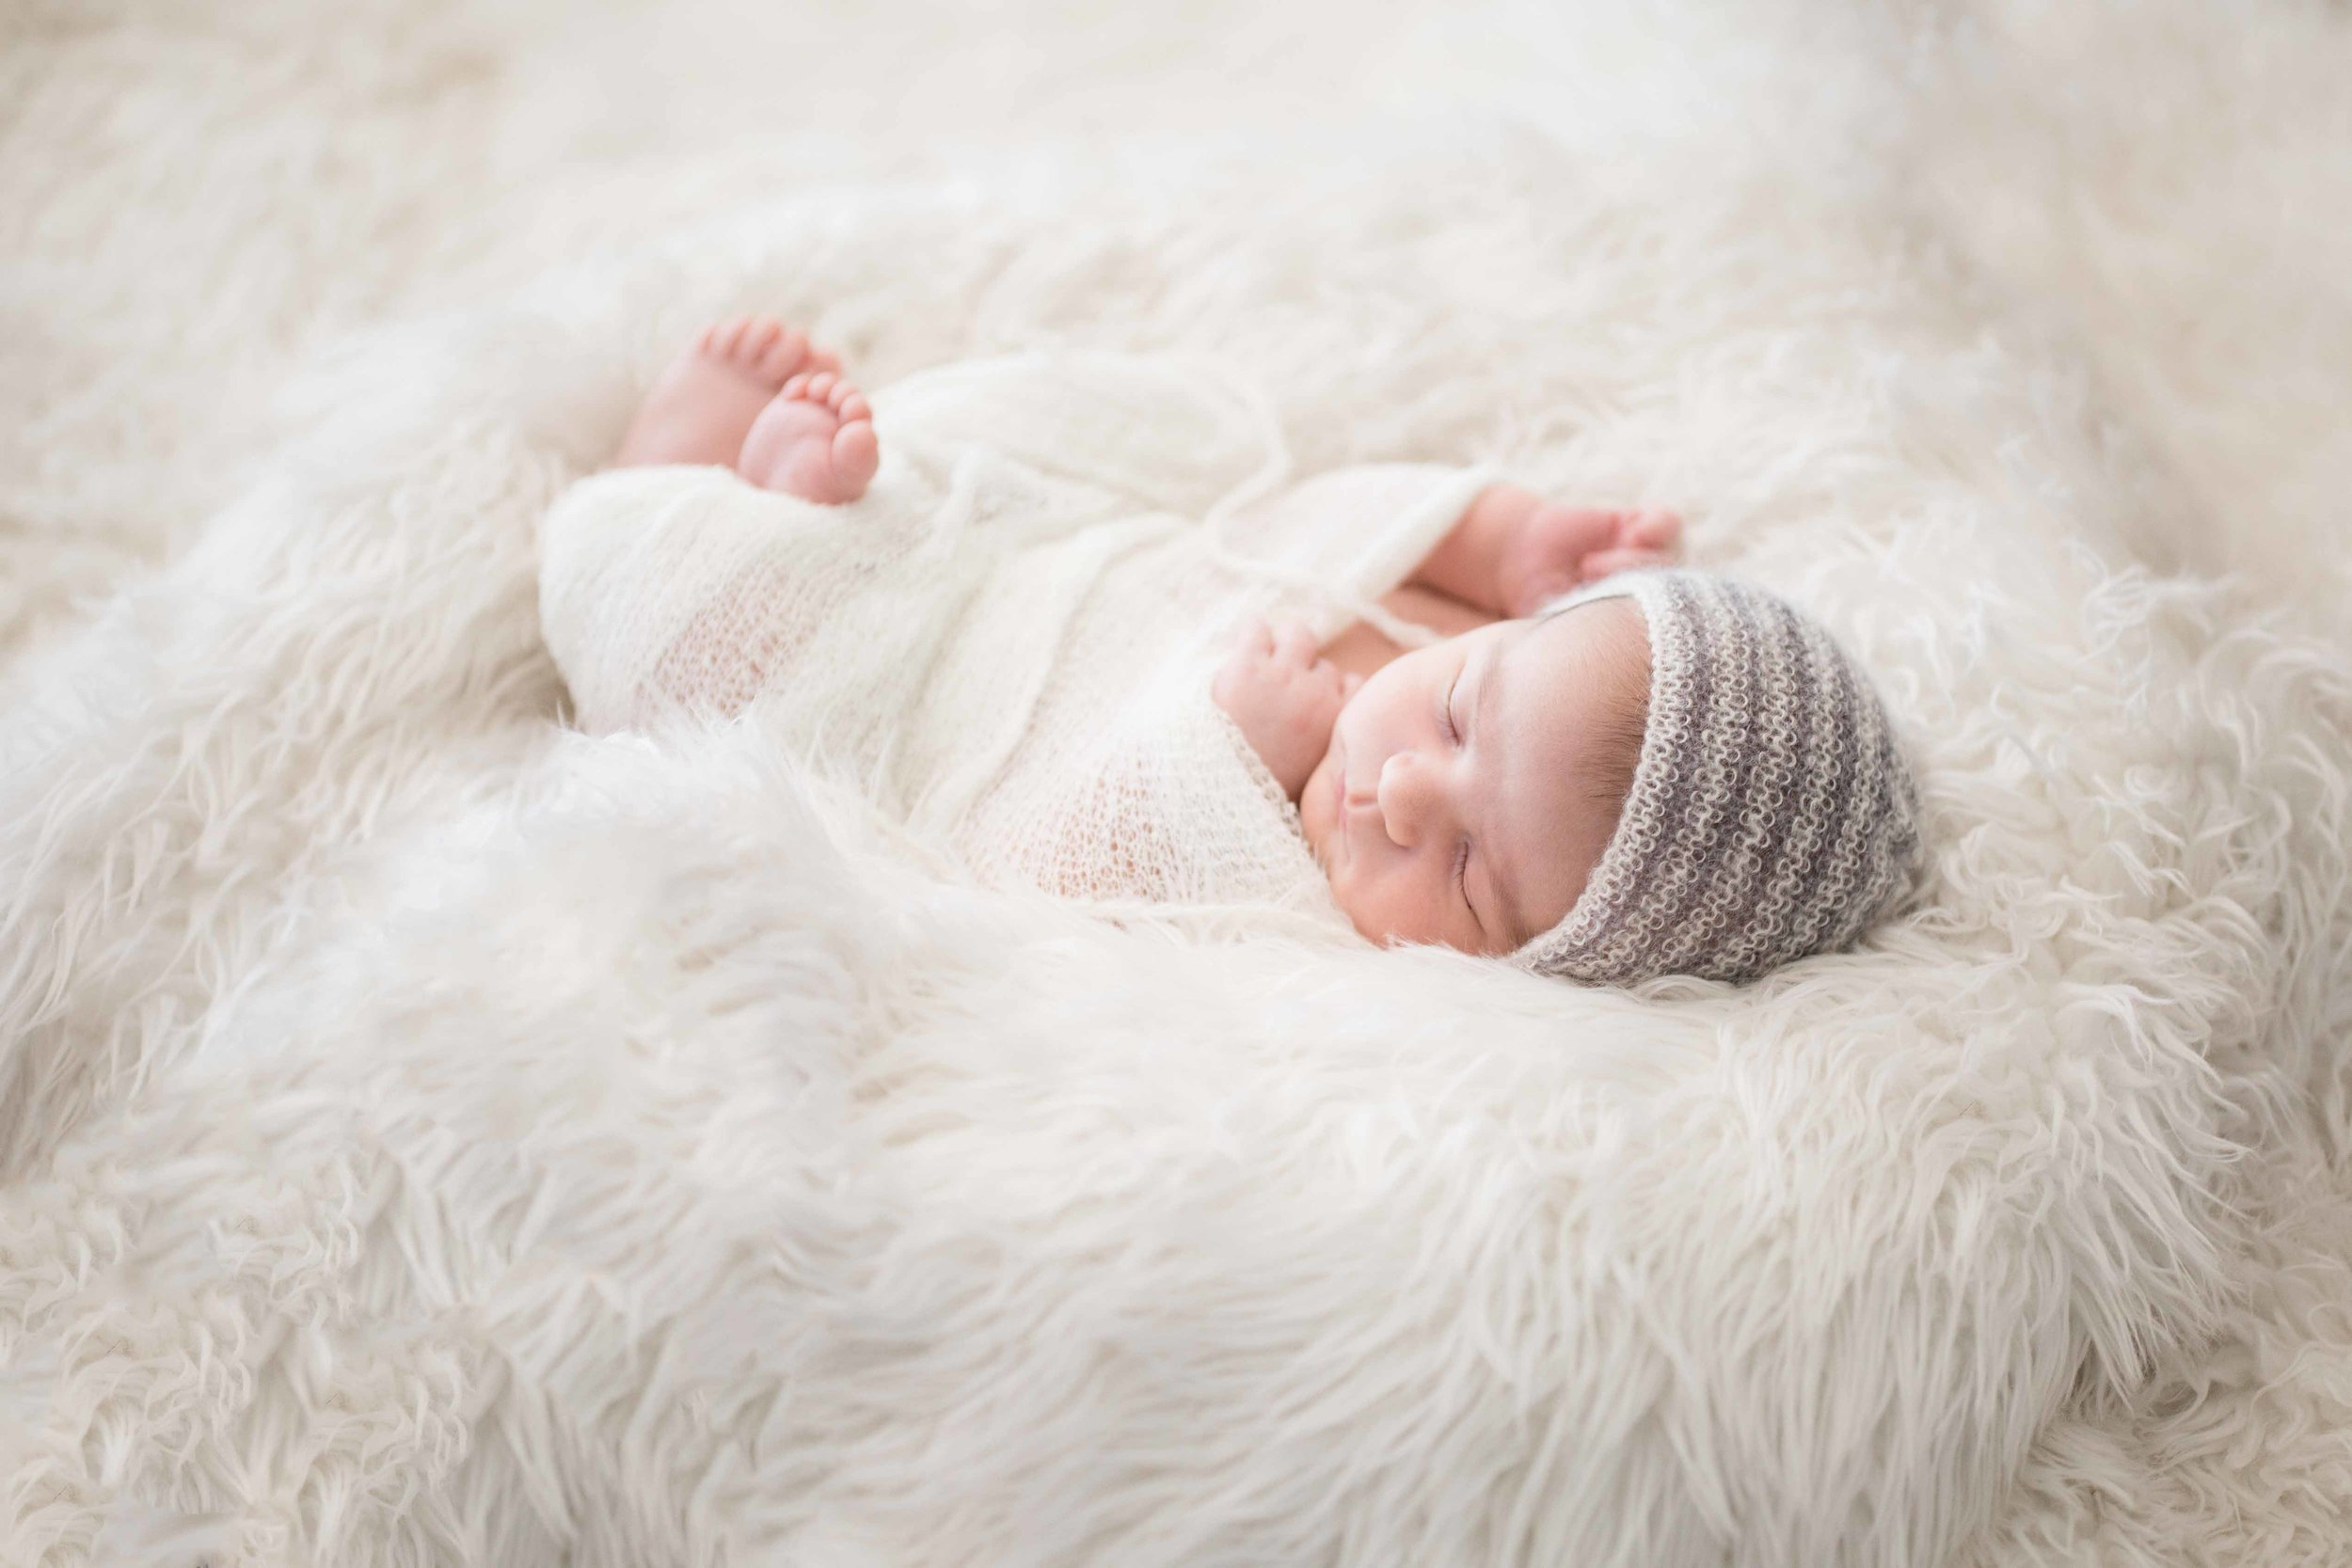 Newborn photography is something I love to capture! The way the light kisses Oliver's cheek and toes, the positioning, and fabrics used add those beautiful details to complete each photo.